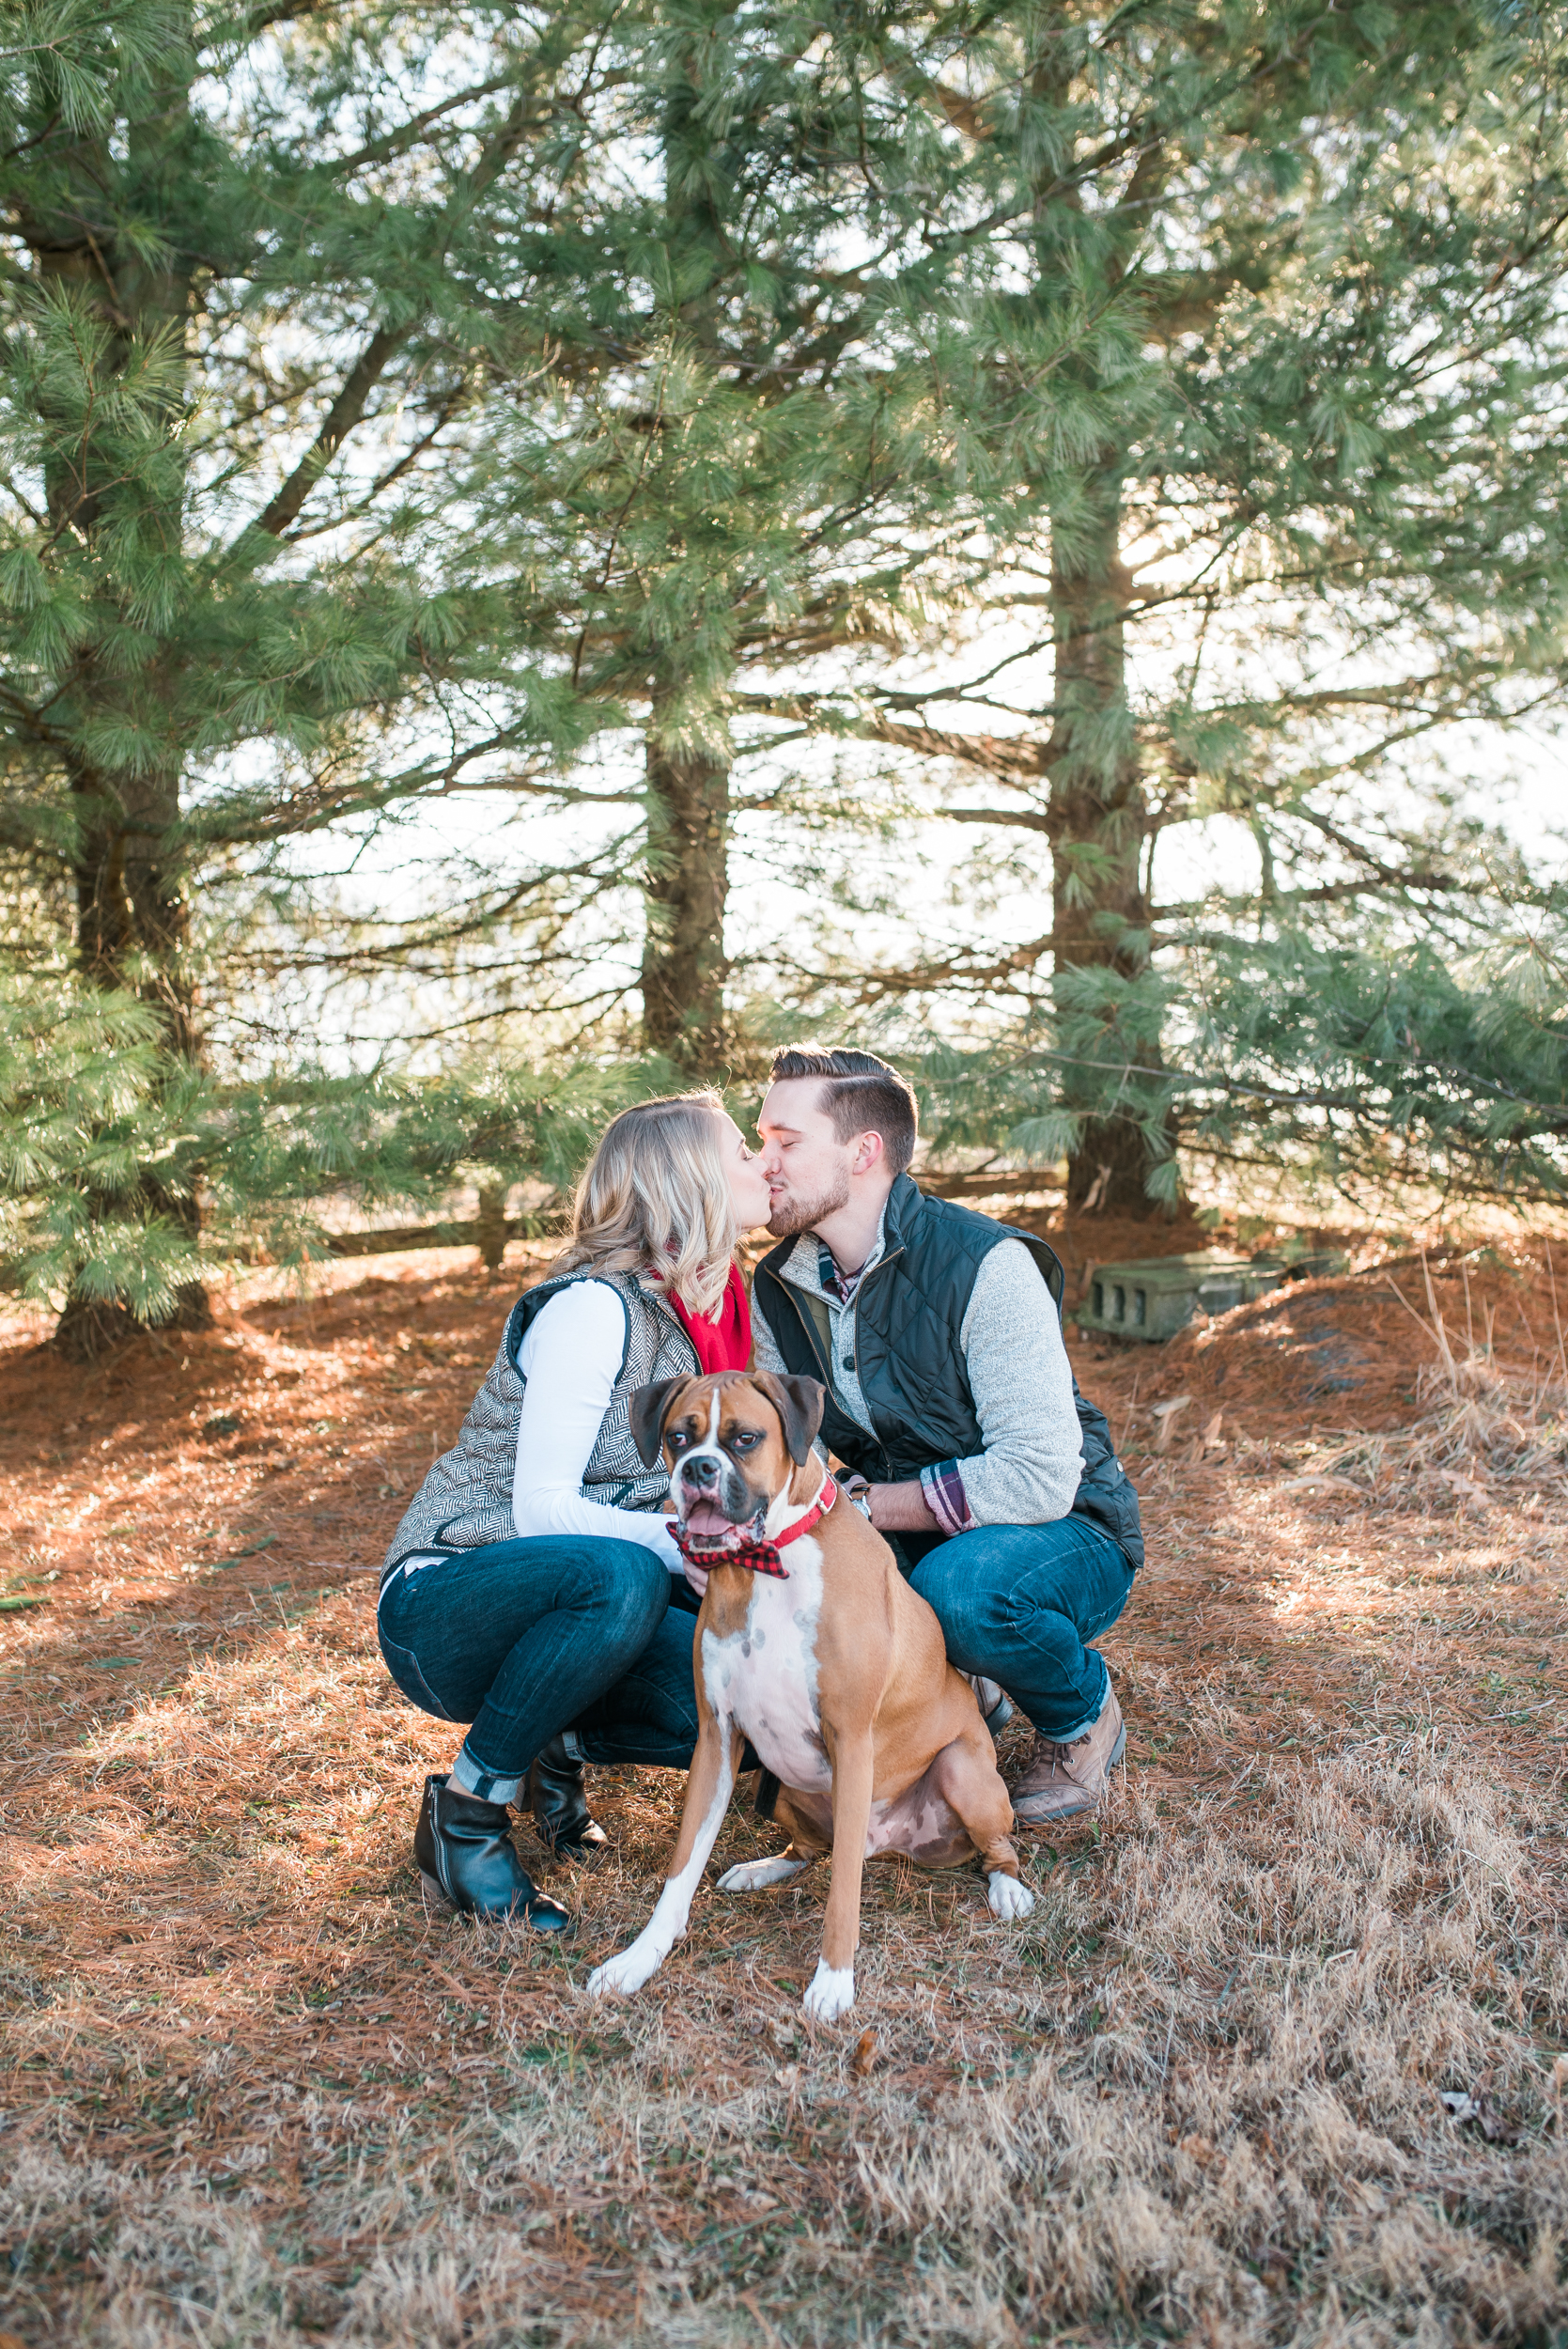 rocks-state-park-engagement-chelsea-blanch-photography-1.jpgrocks-state-park-engagement-chelsea-blanch-photography-1